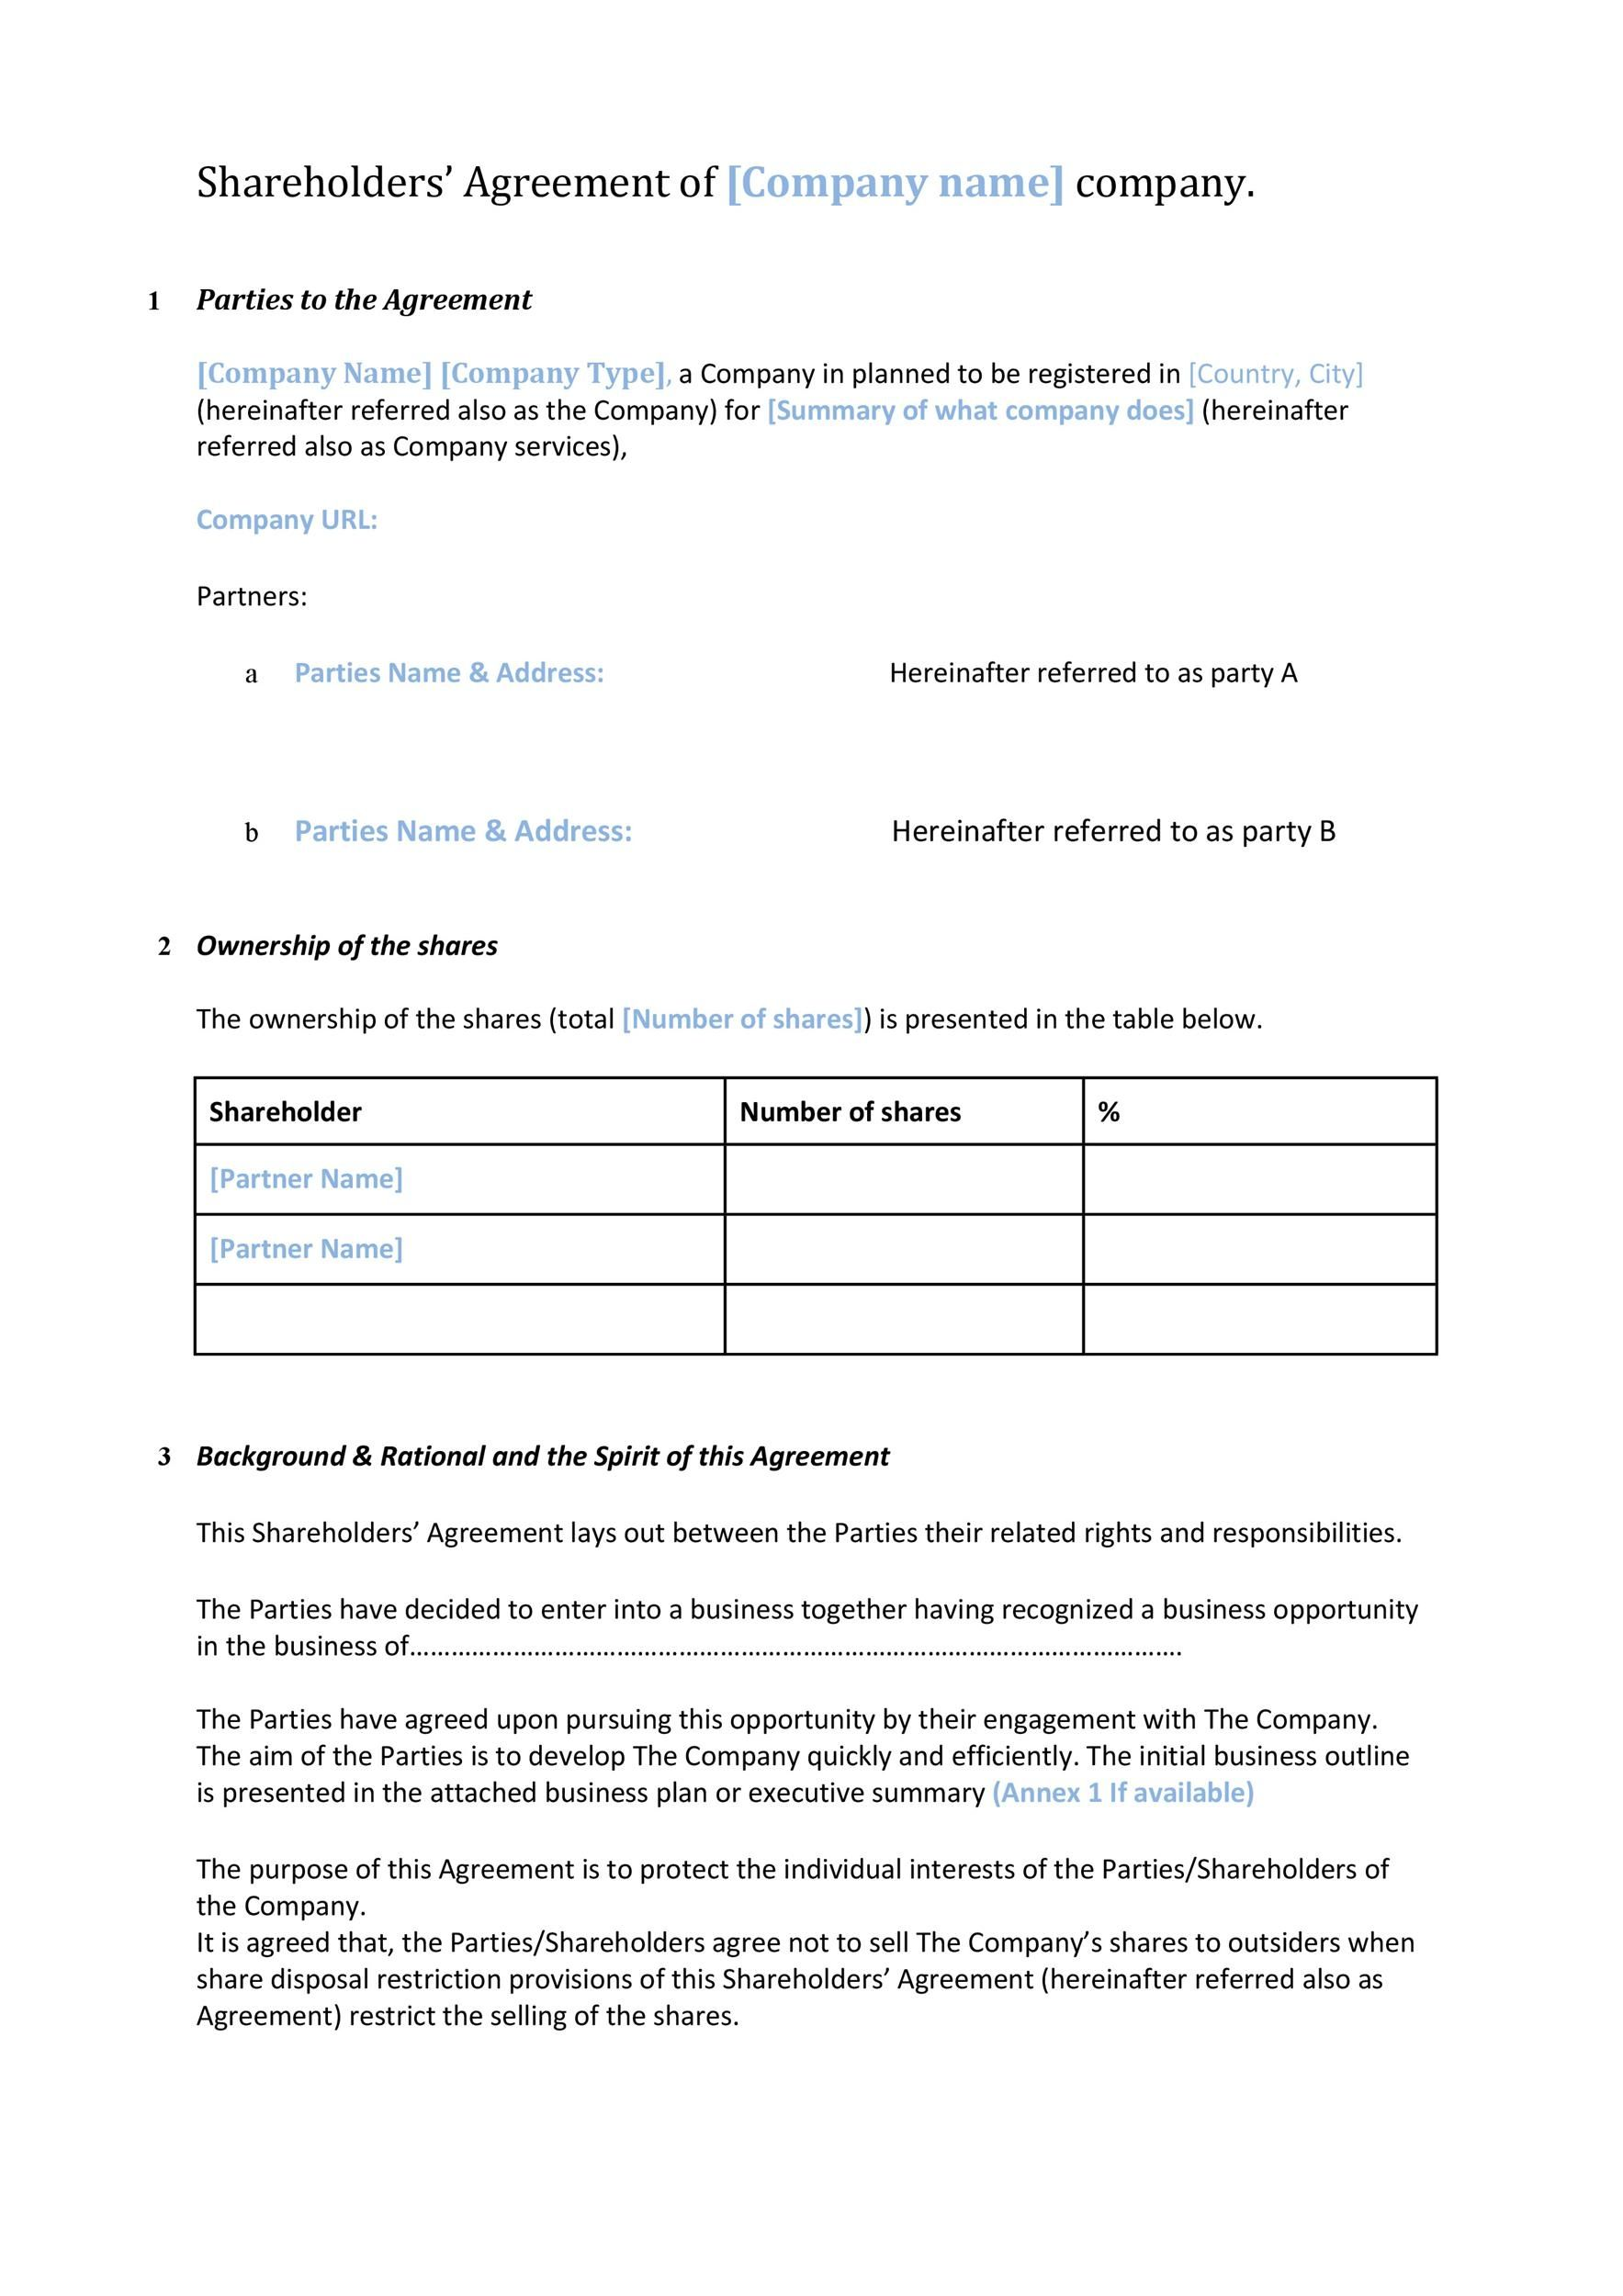 Stockholder Agreement Template In 2021 Templates Graphic Design Templates Word Template